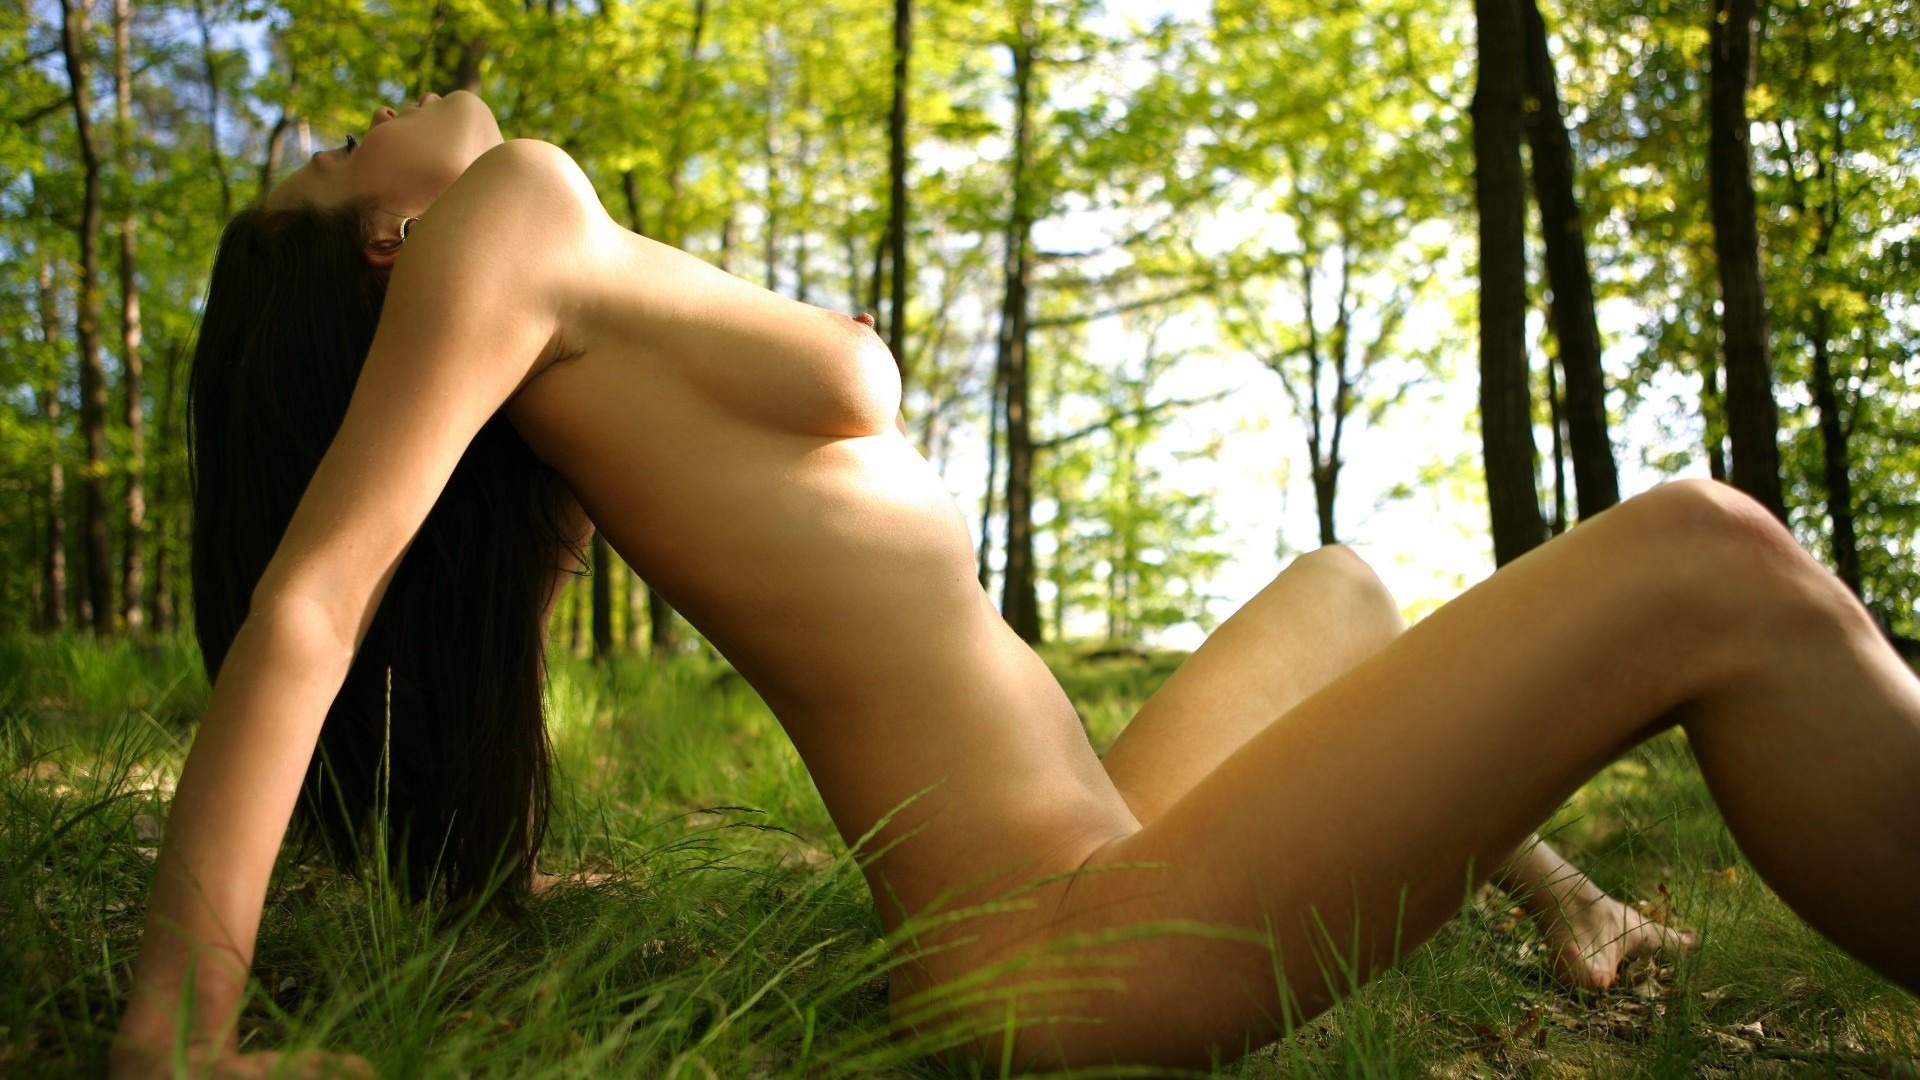 Forest nud girl wallpaper nsfw gorgeous women